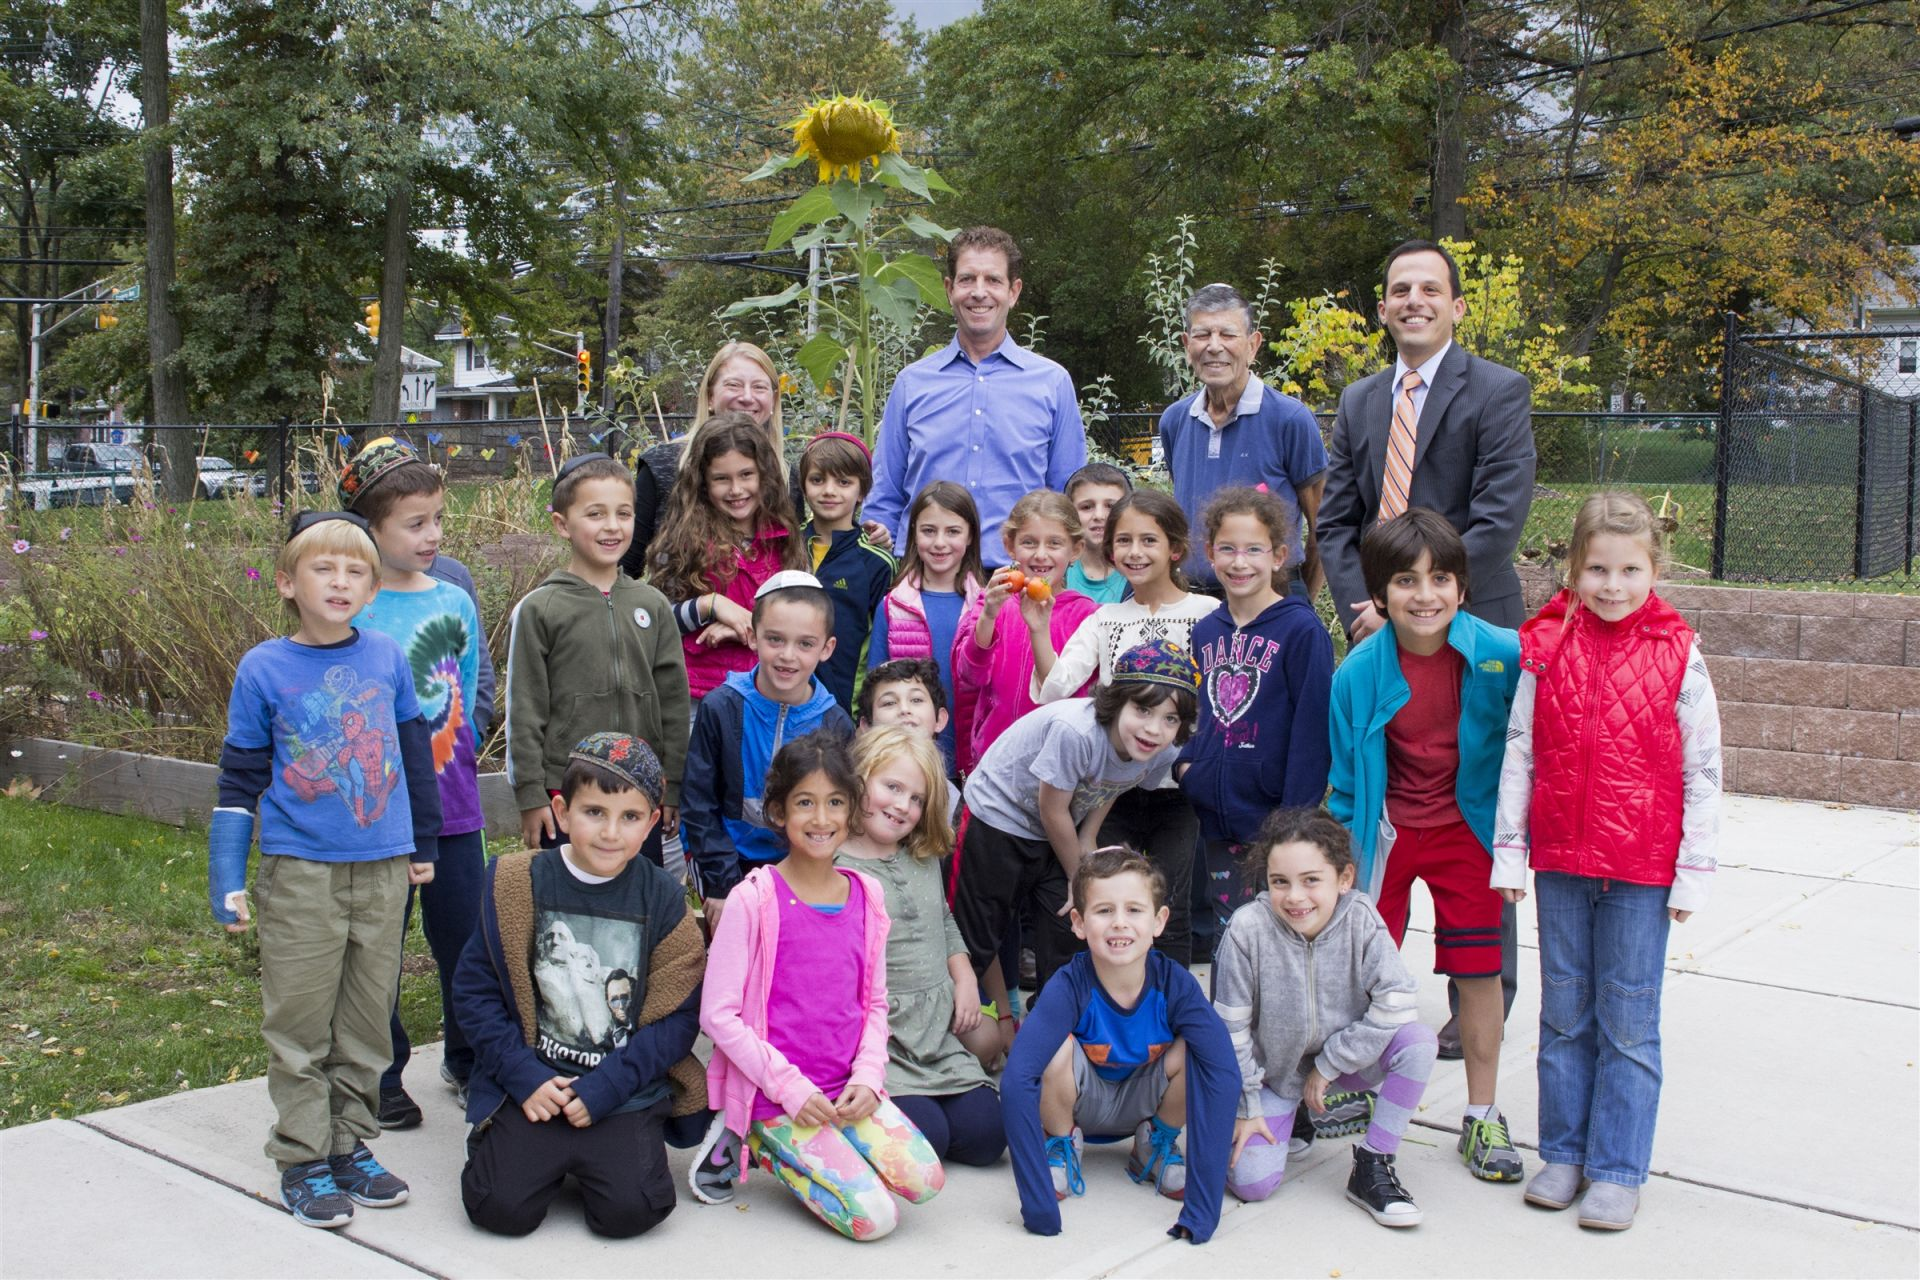 Dan and Michael Och visited the Wilf Lower School Campus October 2015.